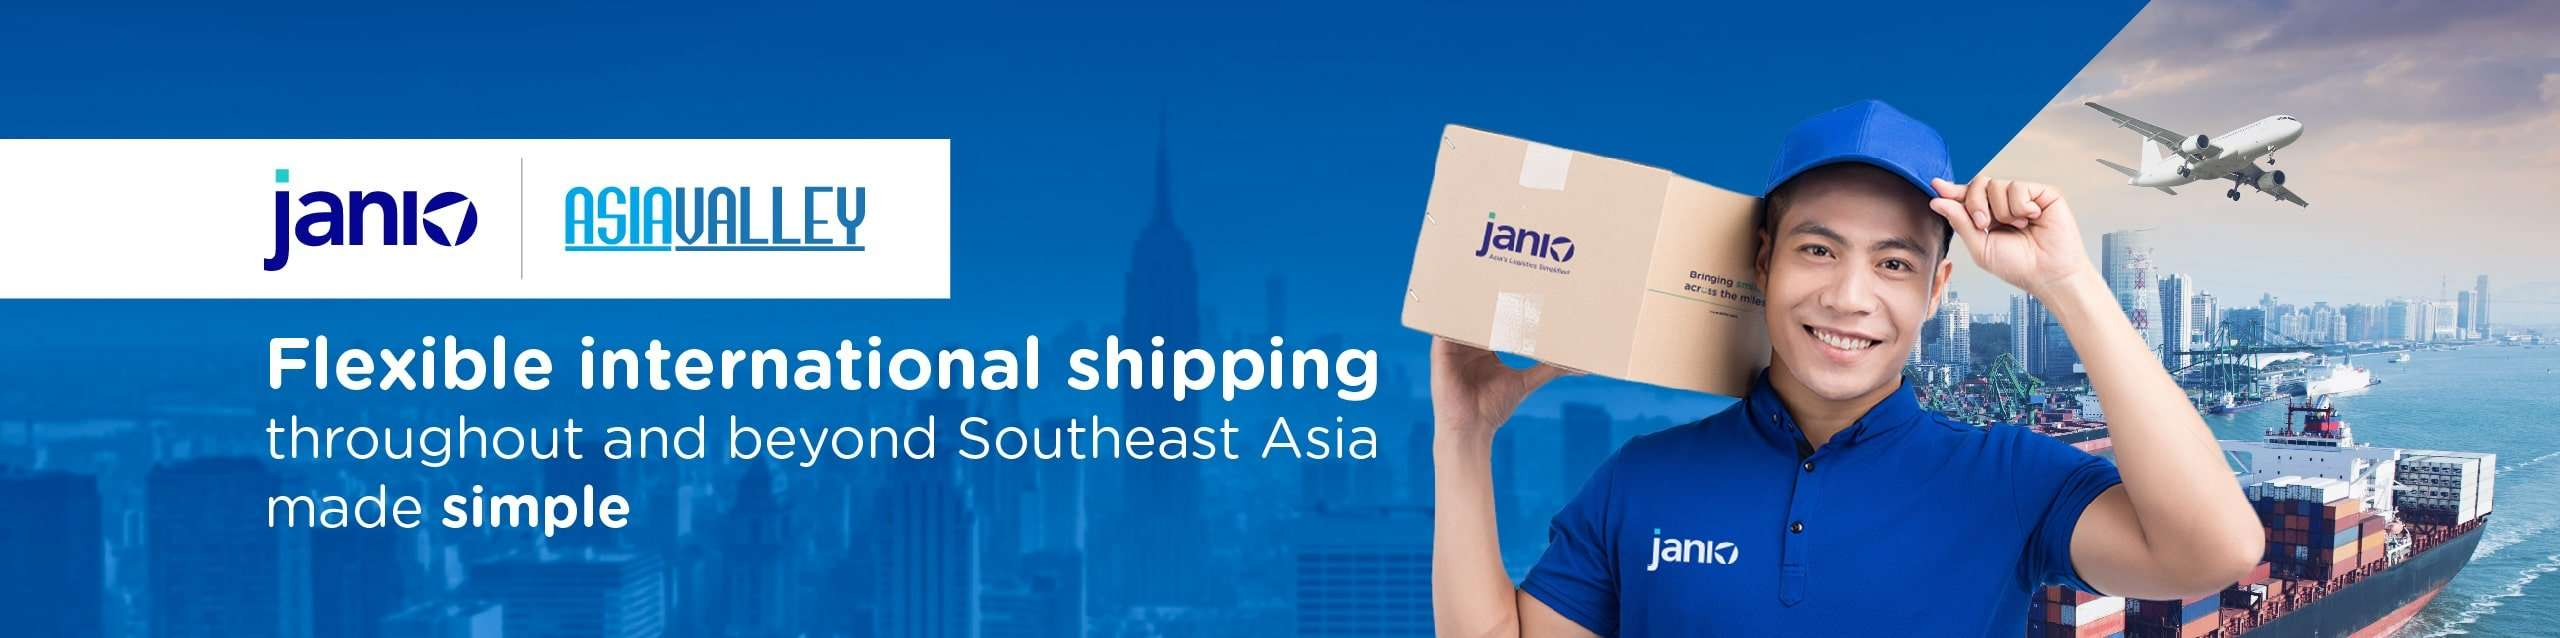 Janio Asia and Asia Valley partnership banner - Caption: Flexible international shipping throughout and beyond Southeast Asia made simple - Janio staff holding a box in front of a plane and sea port